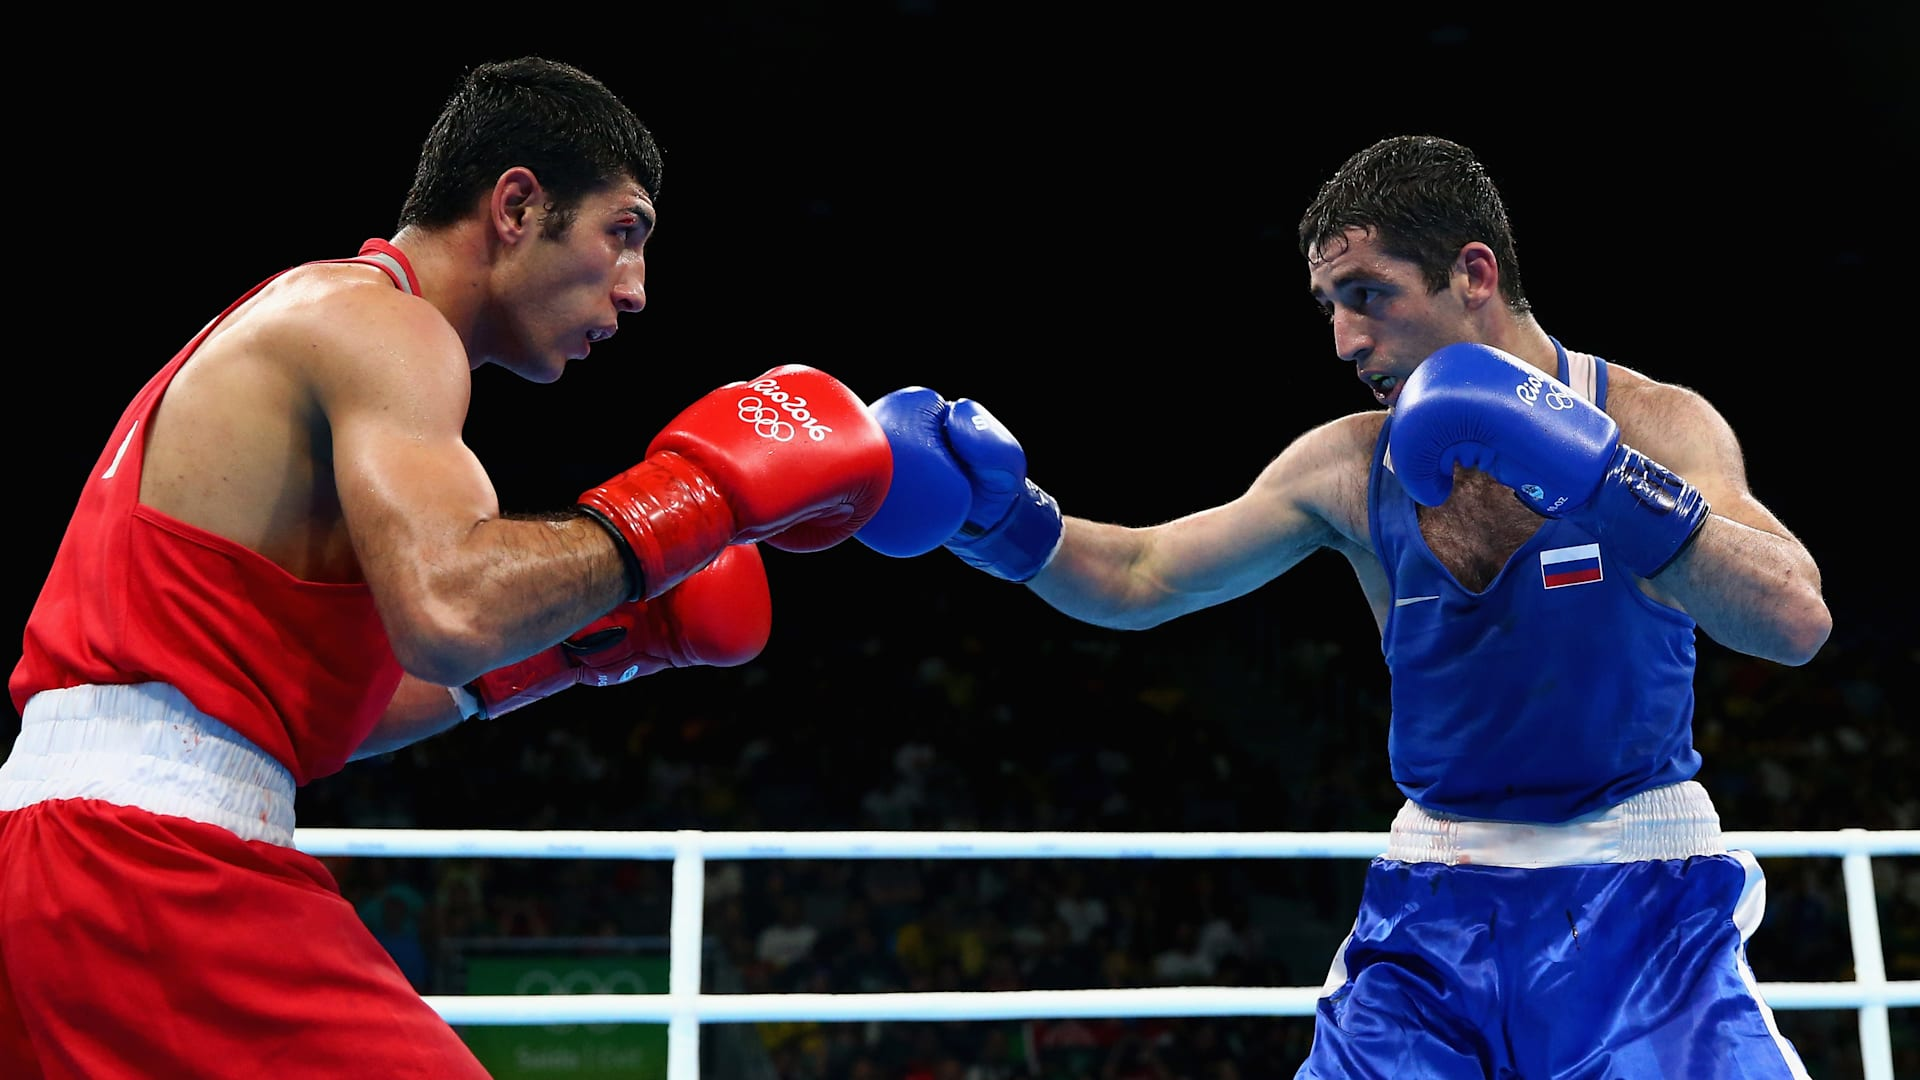 Olympic boxing: Know the rules, qualification process and more